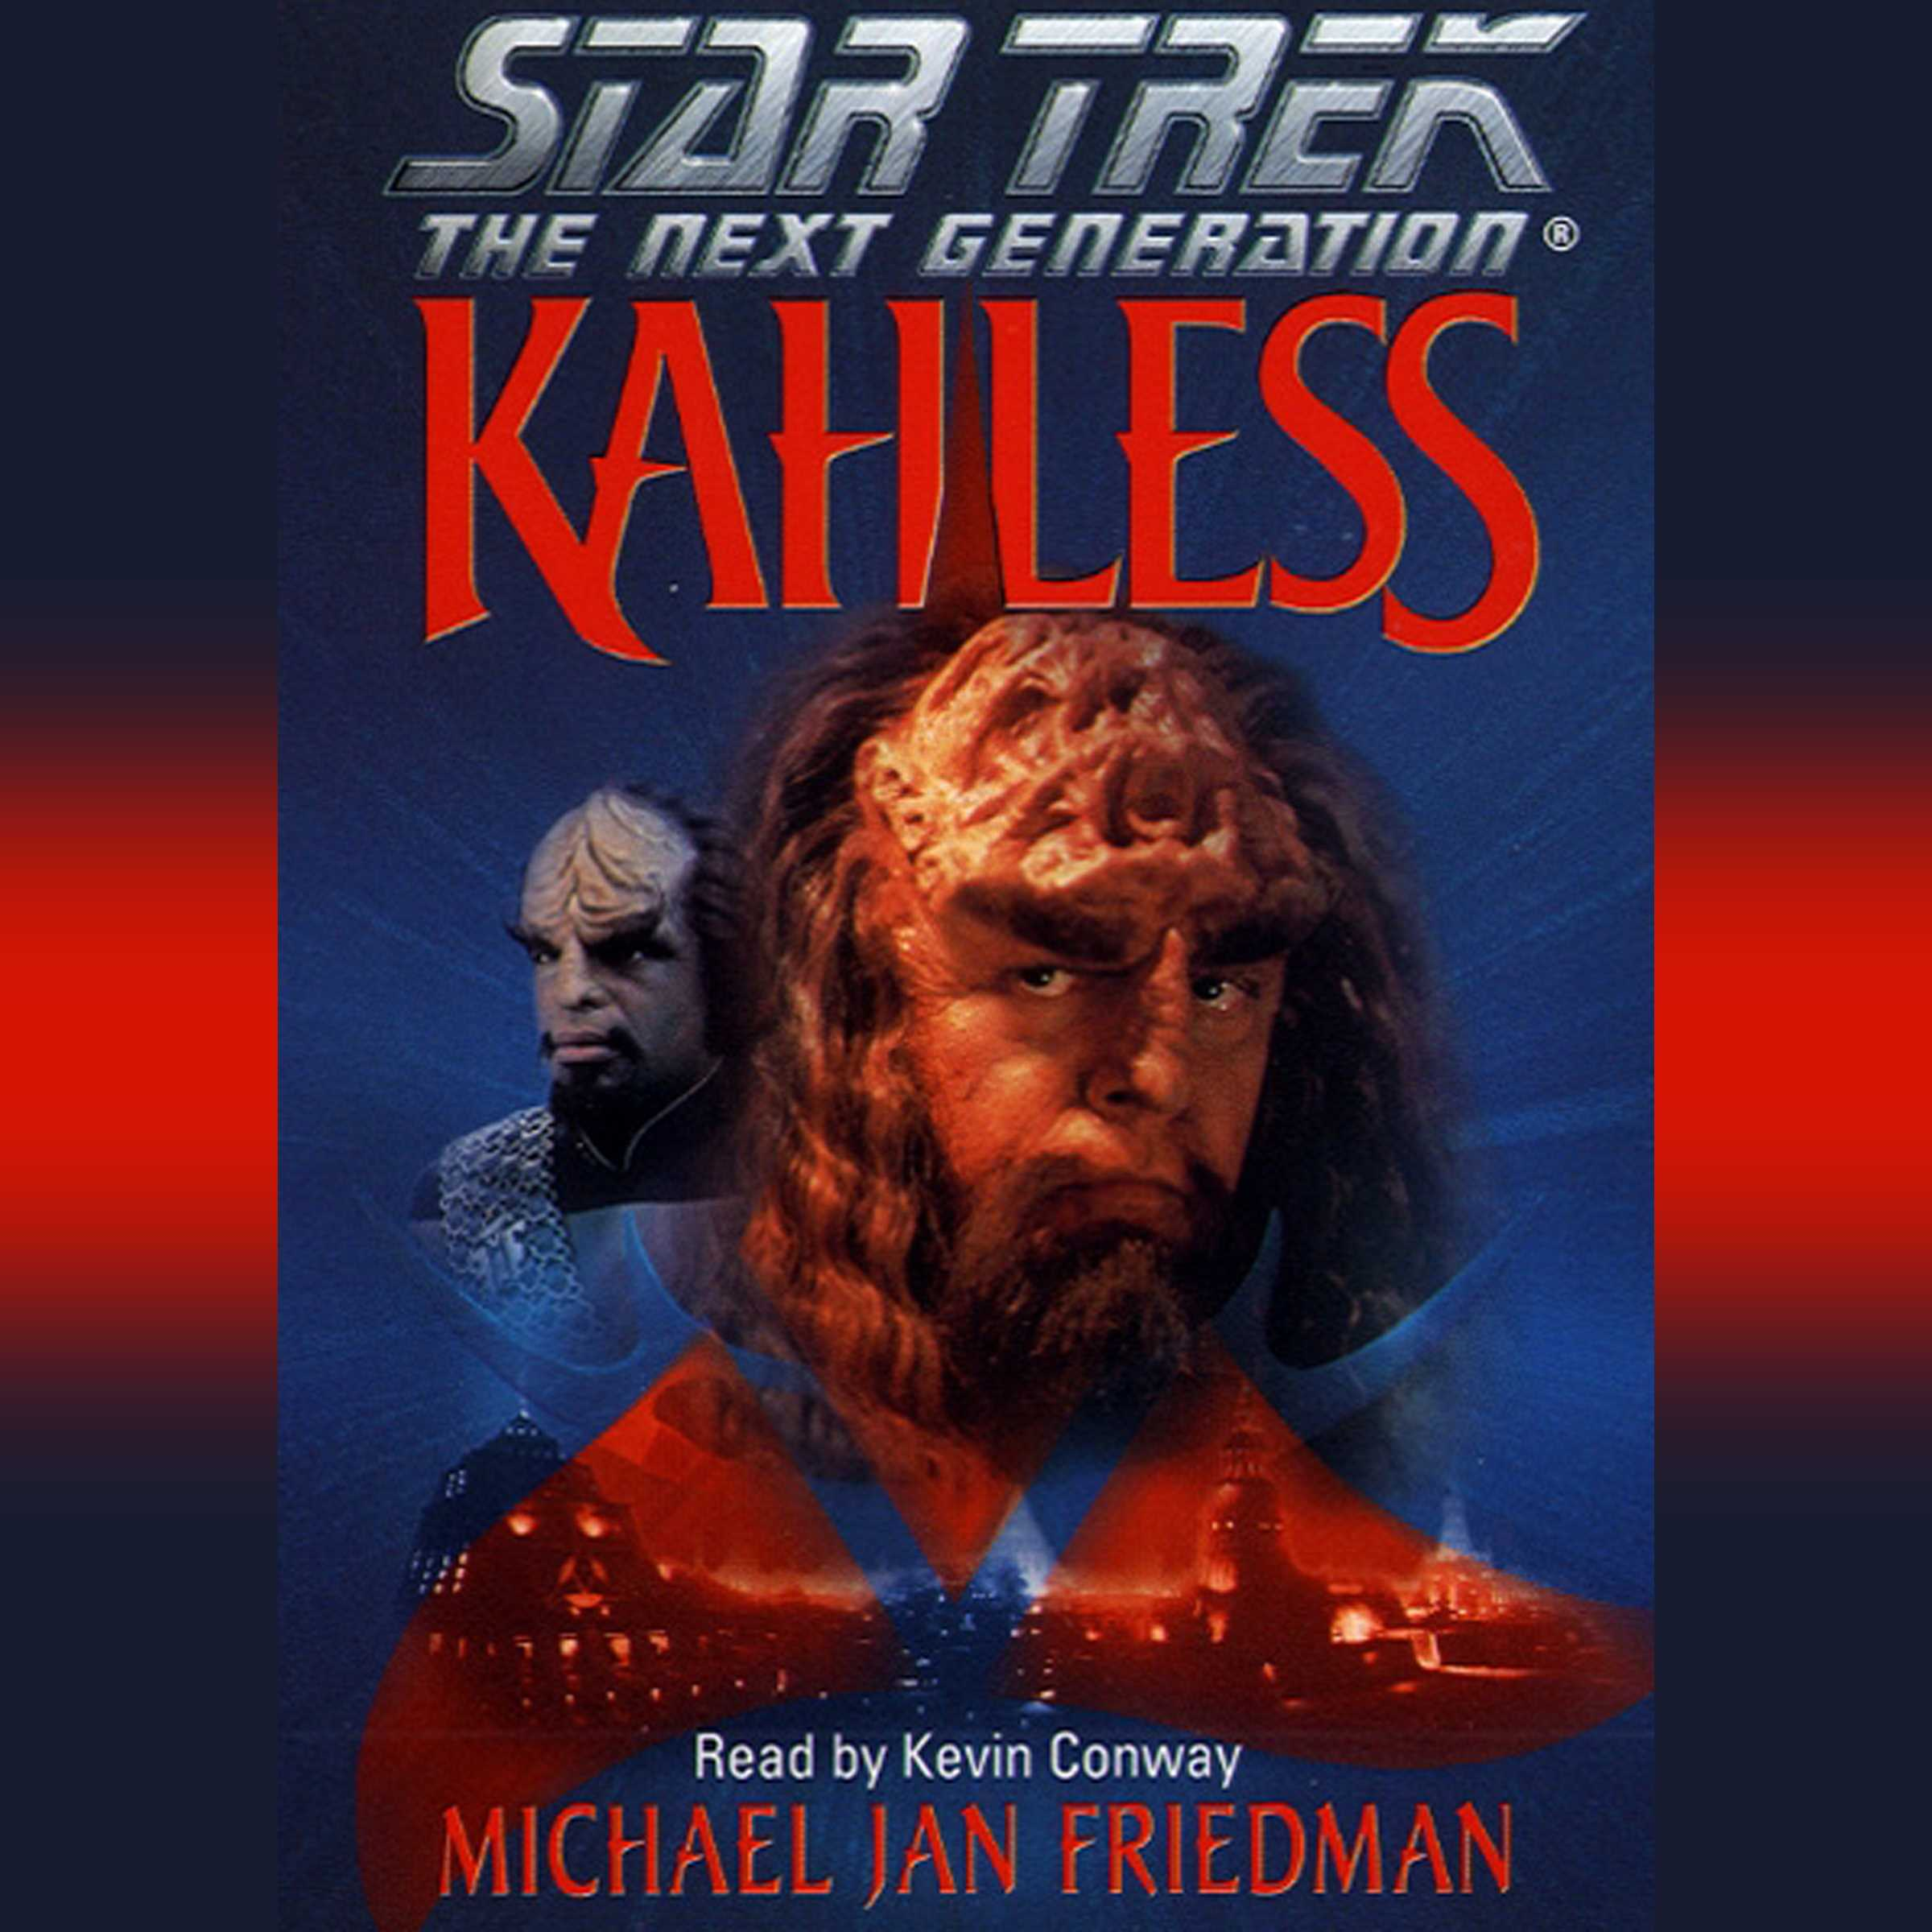 Star-trek-the-next-generation-kahless-9780743546287_hr